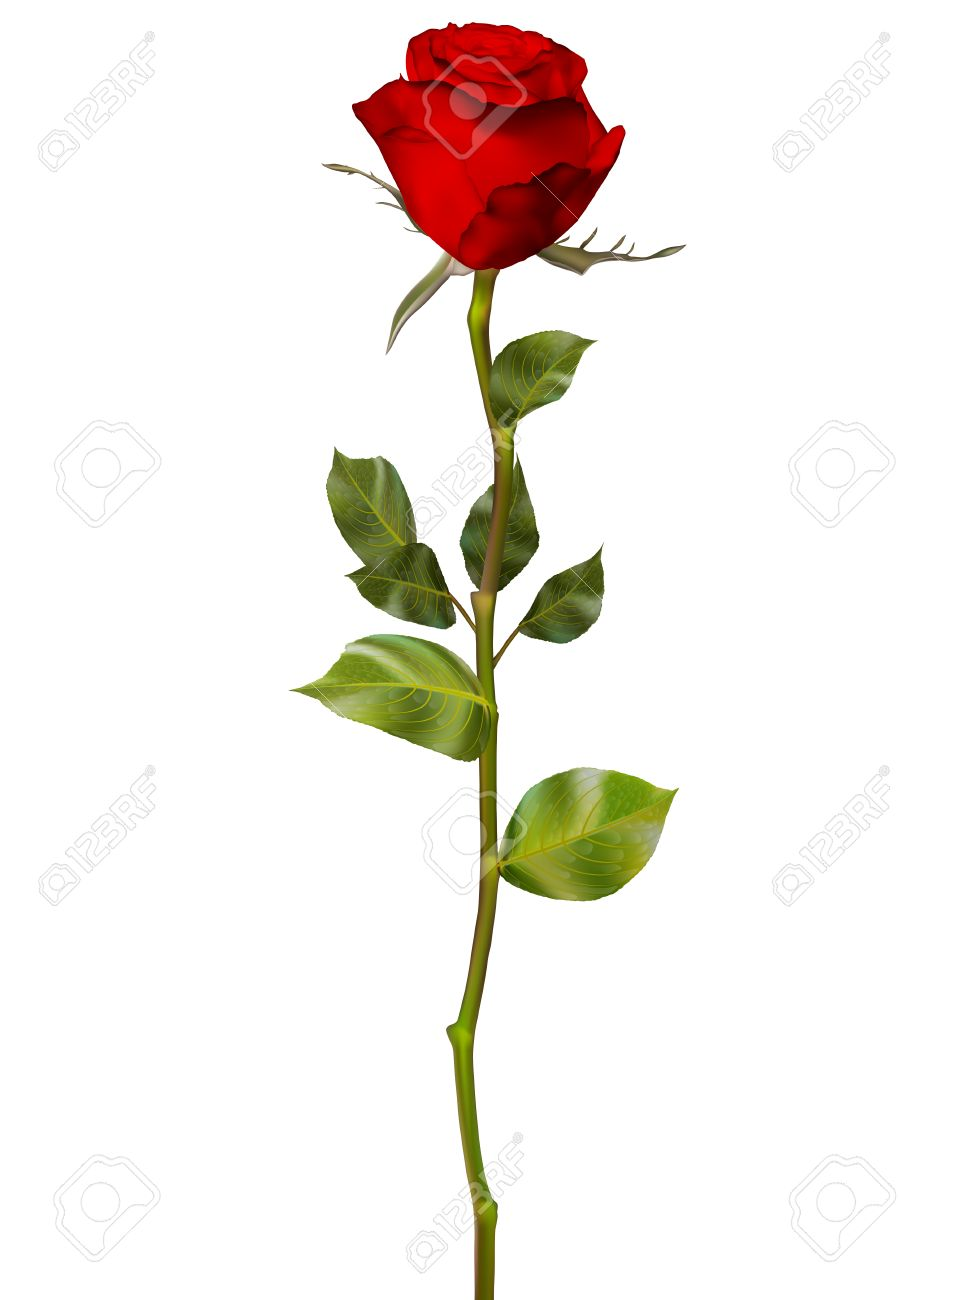 Red Rose isolated on white. EPS 10 vector file included - 52420774